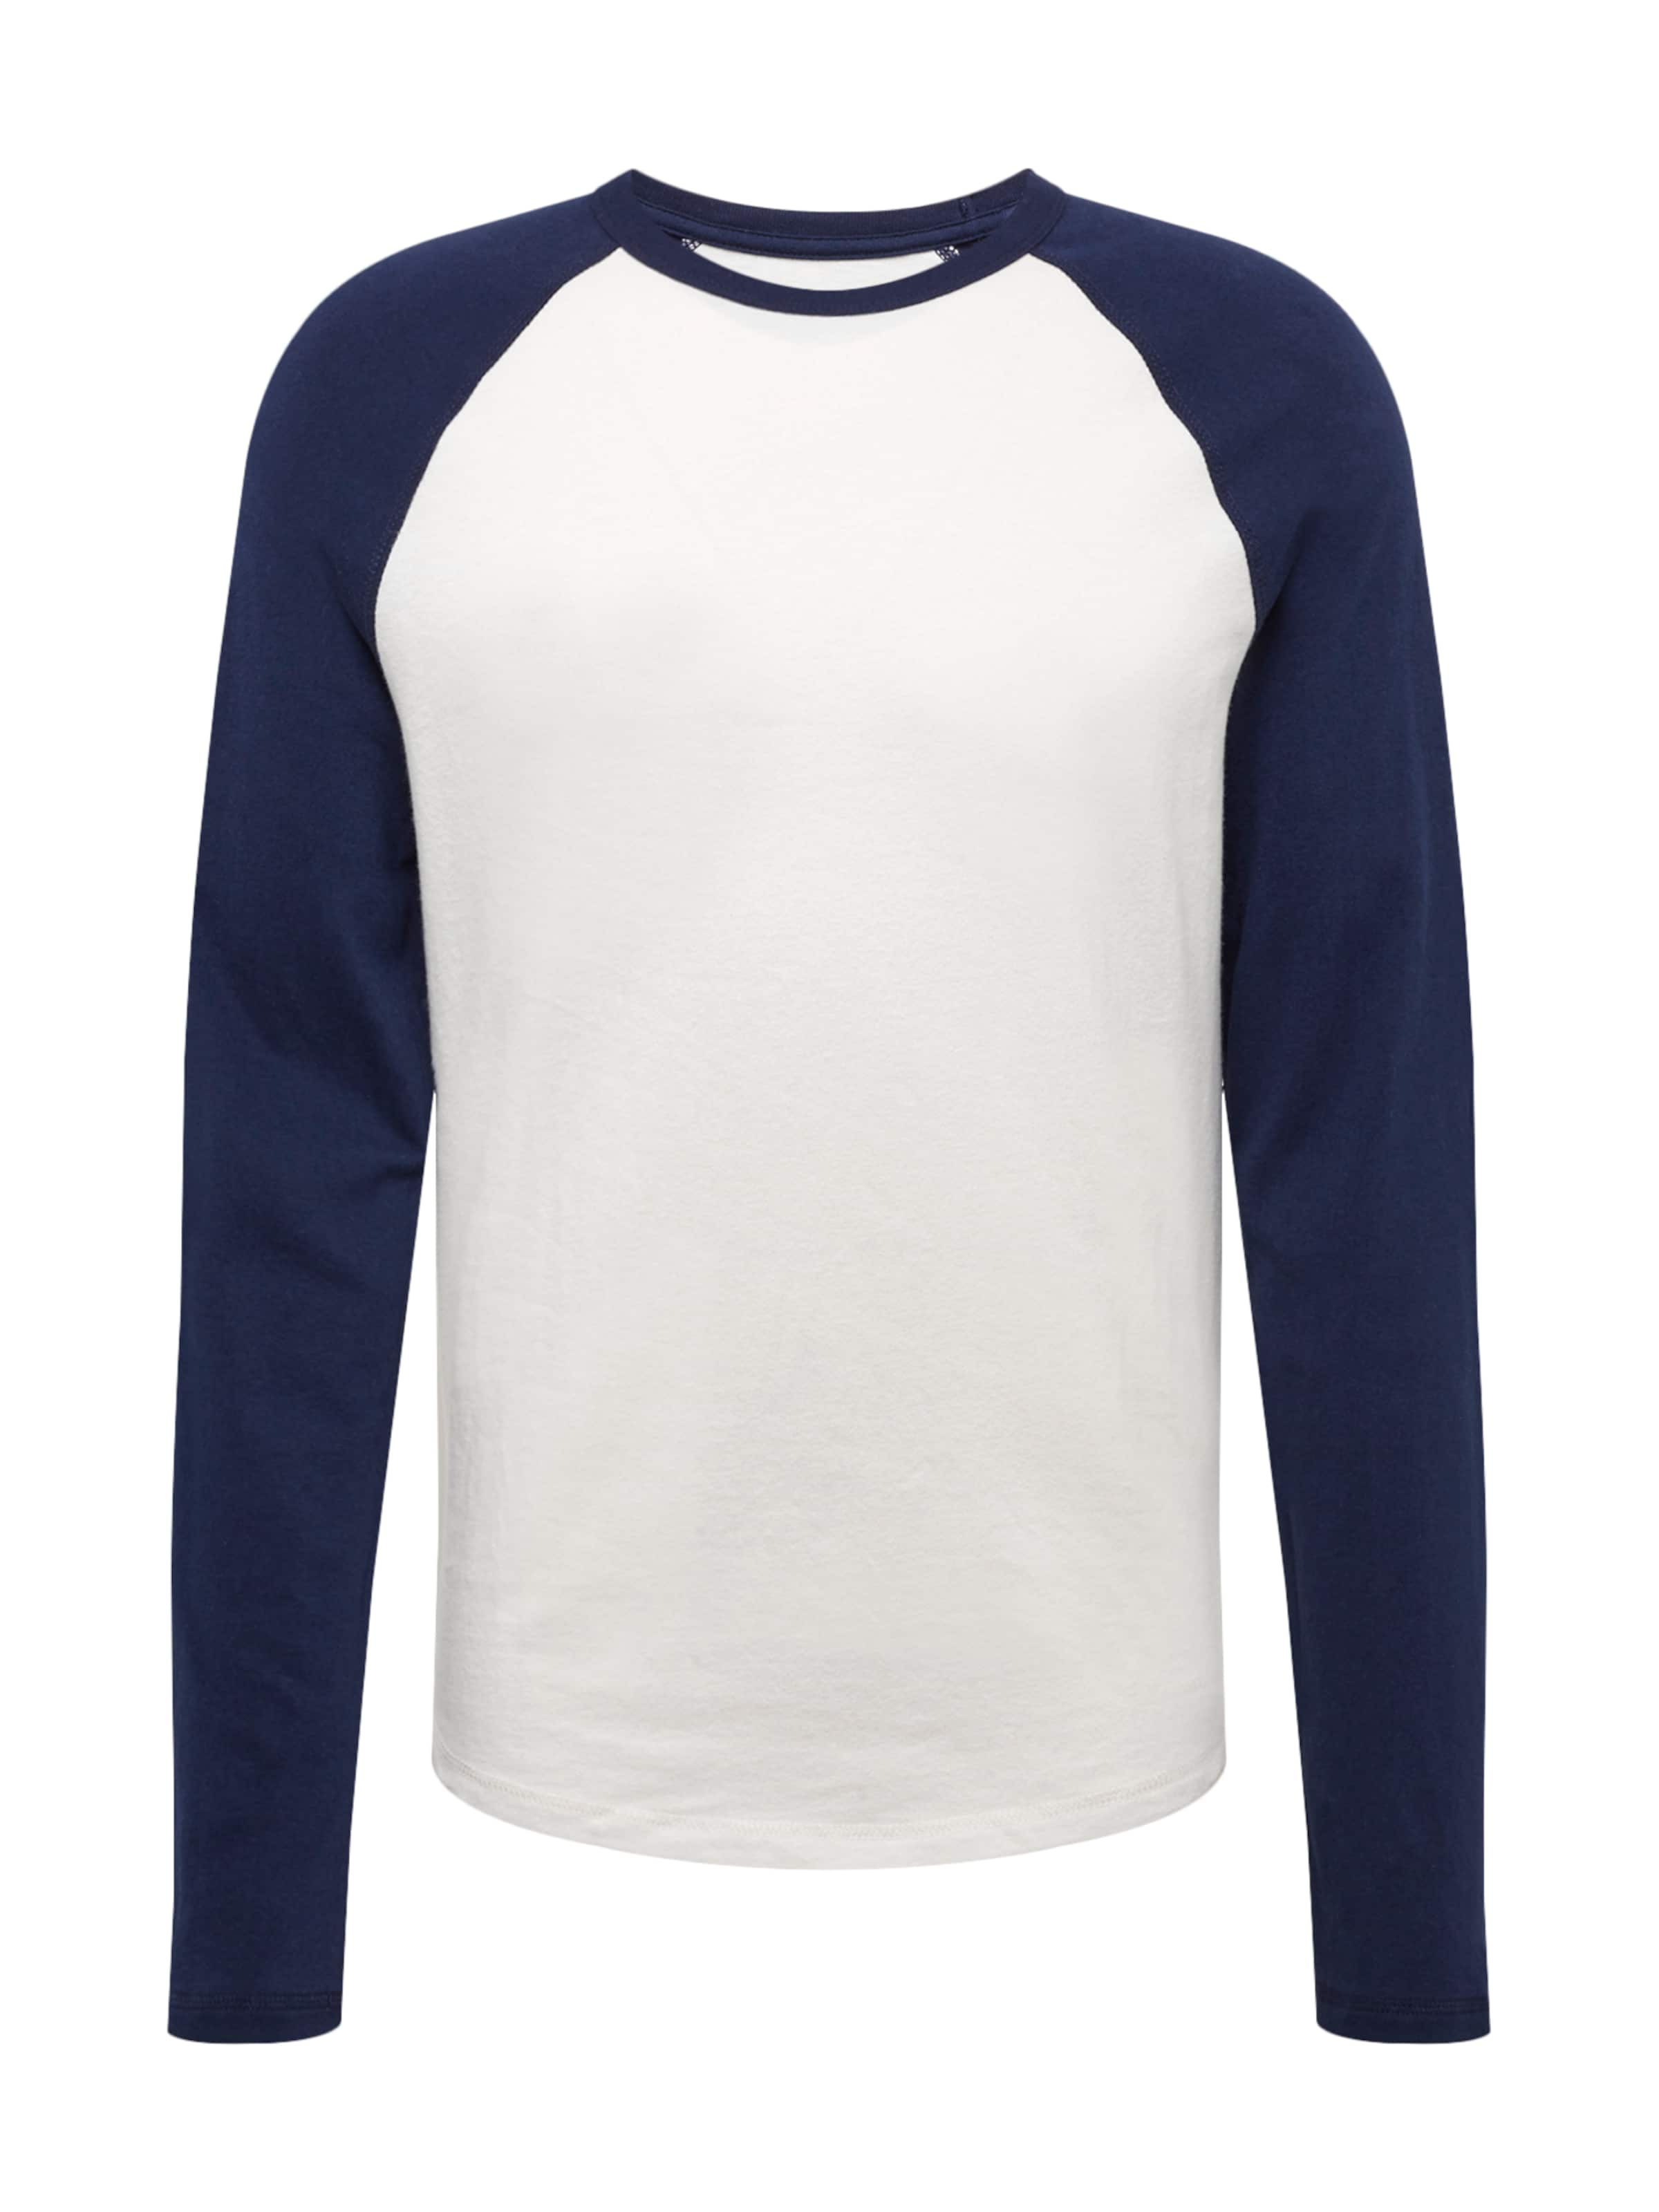 T Sueded En shirt Bleu 'v Bbll' ls Gap MarineRouge KJ3cTlF15u